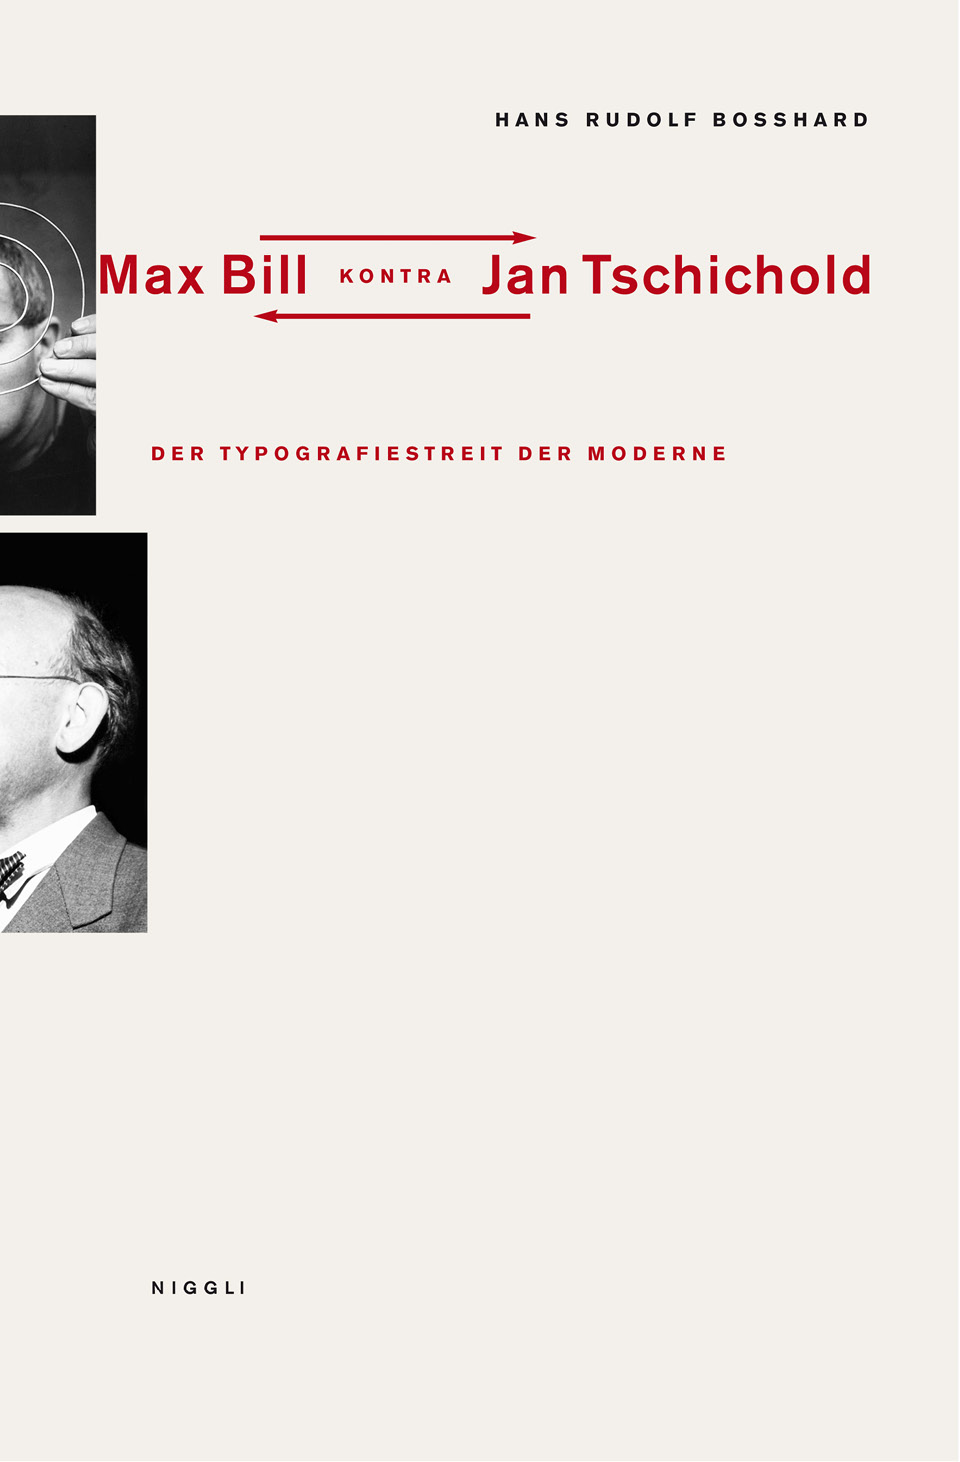 white book cover containing red text and cropped photographs